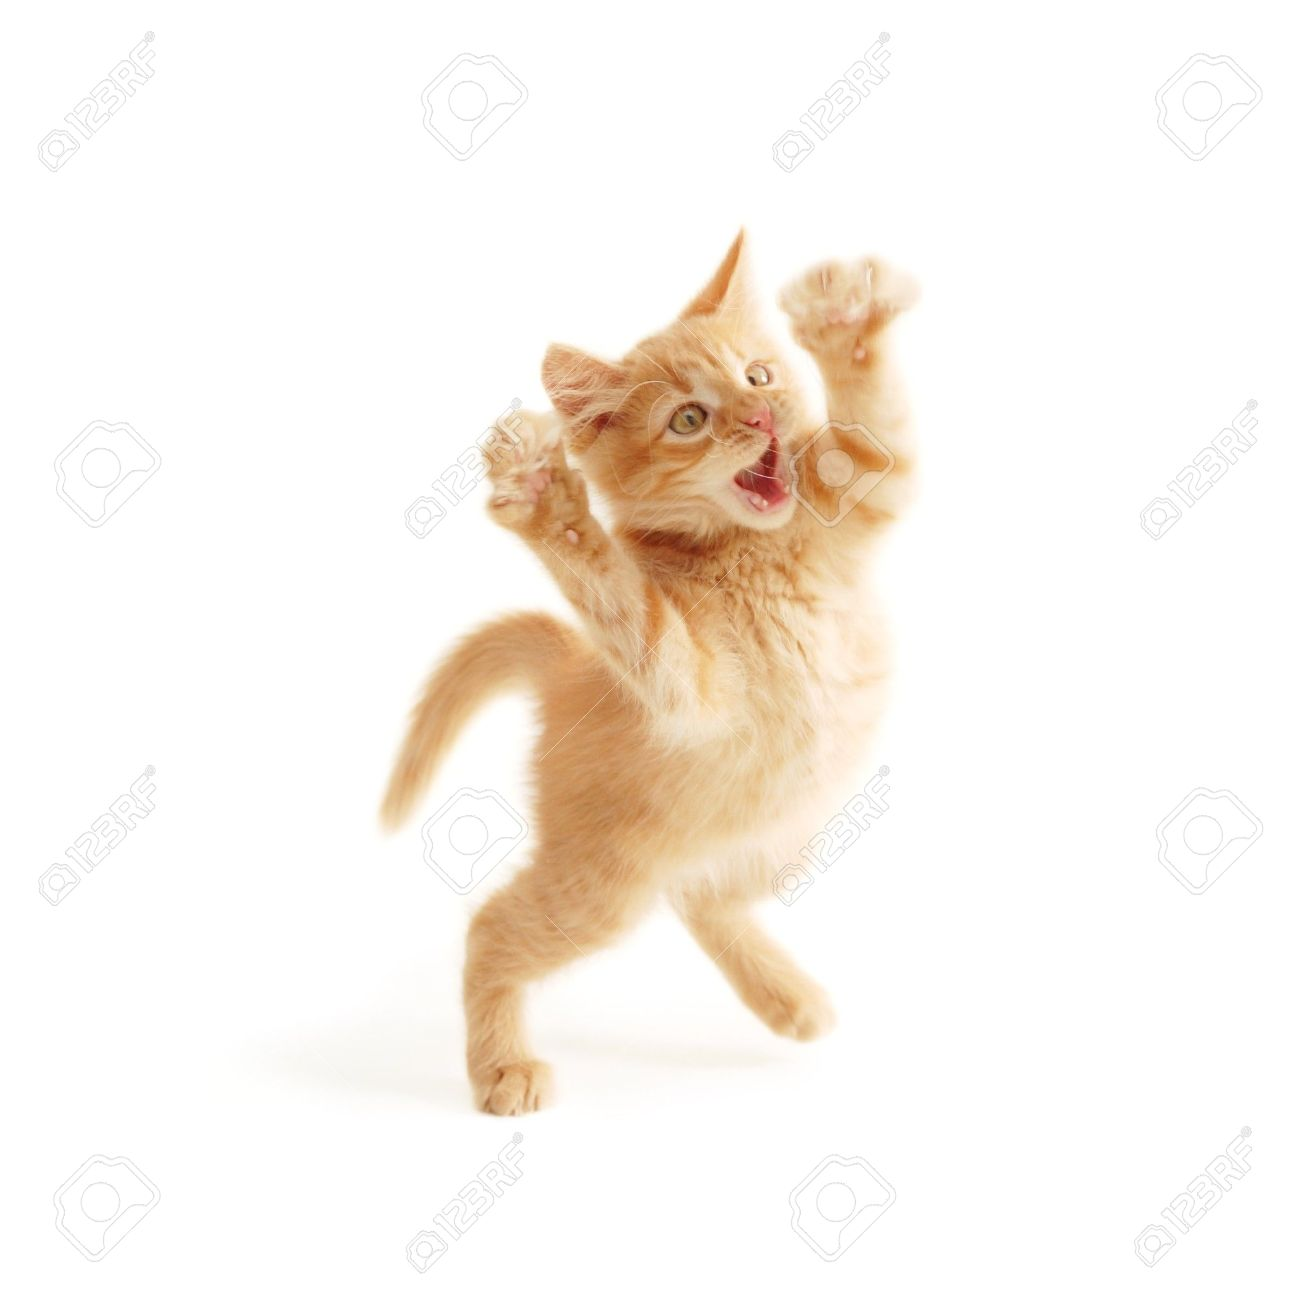 kitten jumping isolated on white background Stock Photo - 7545555